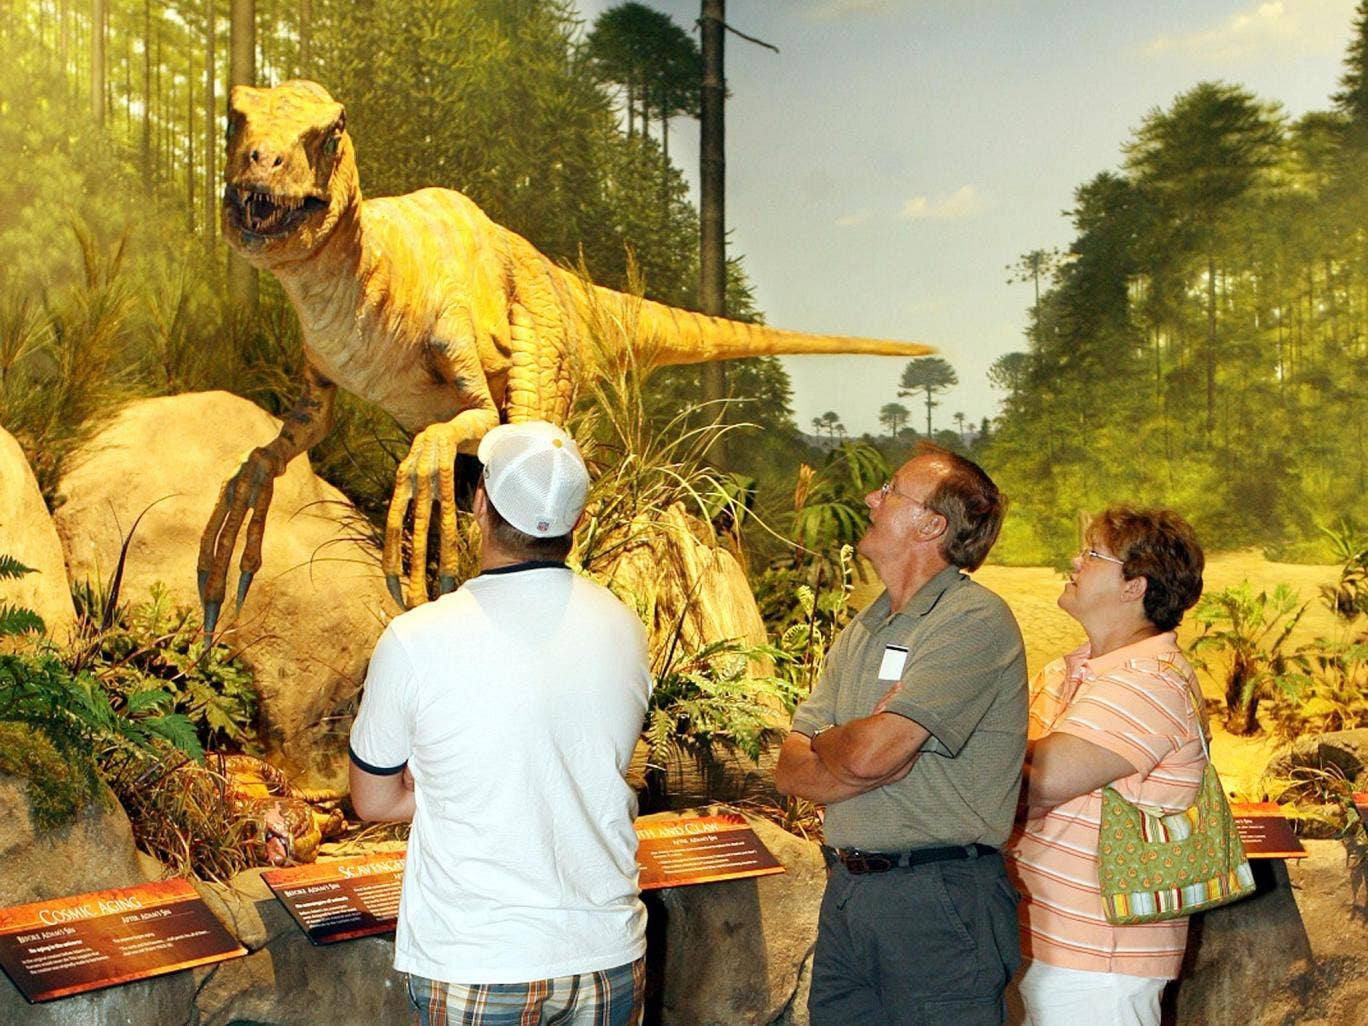 Mainstream science says the allosaurus, a creature similar to the Tyrannosaurus rex, lived in North America about 140 million years ago in the late Jurassic Period